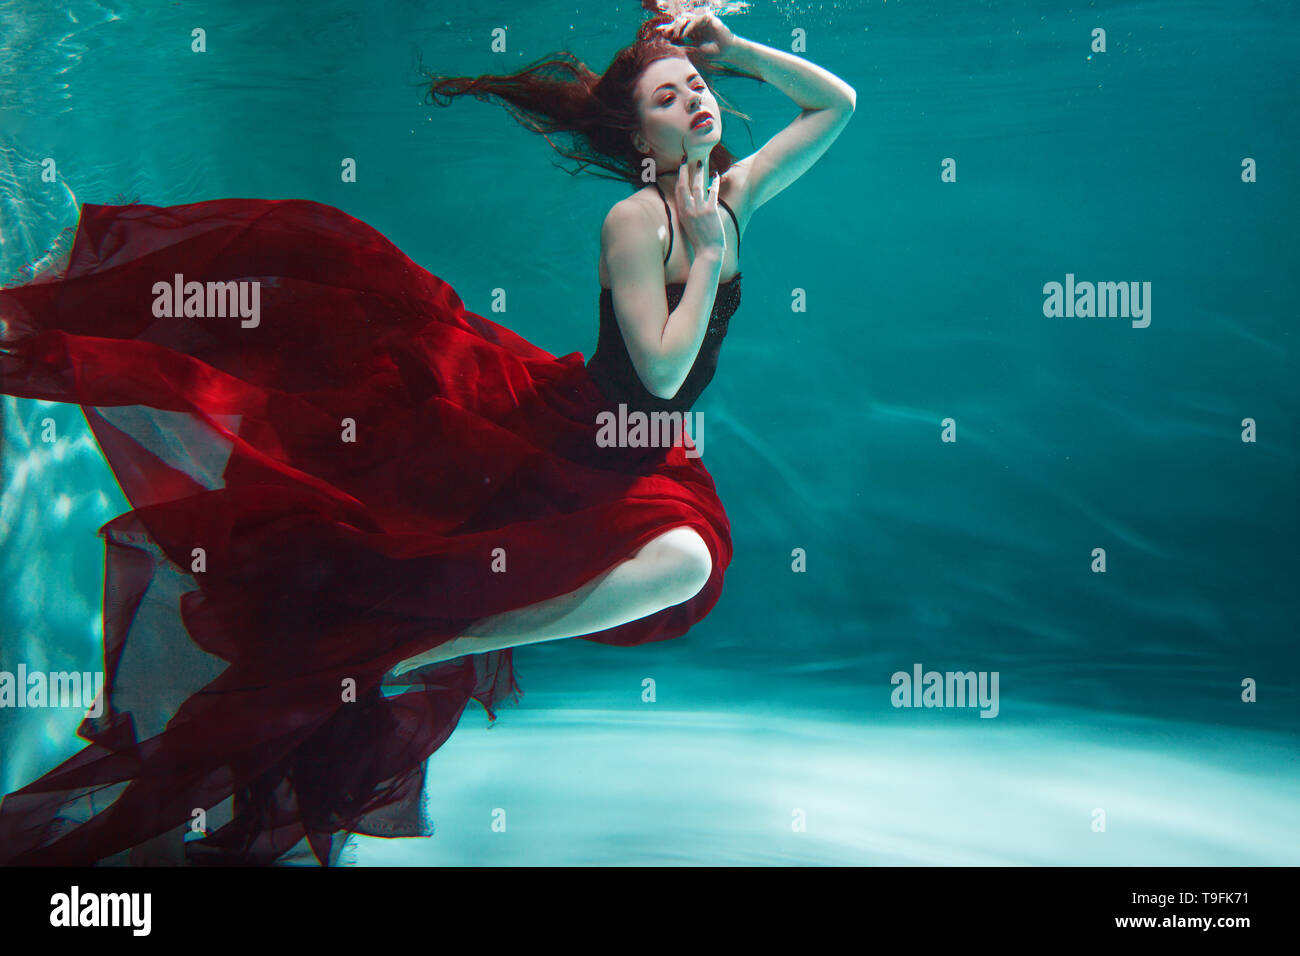 Beautiful young woman in a red dress swims under water. amazing Underwater beauty photo. - Stock Image